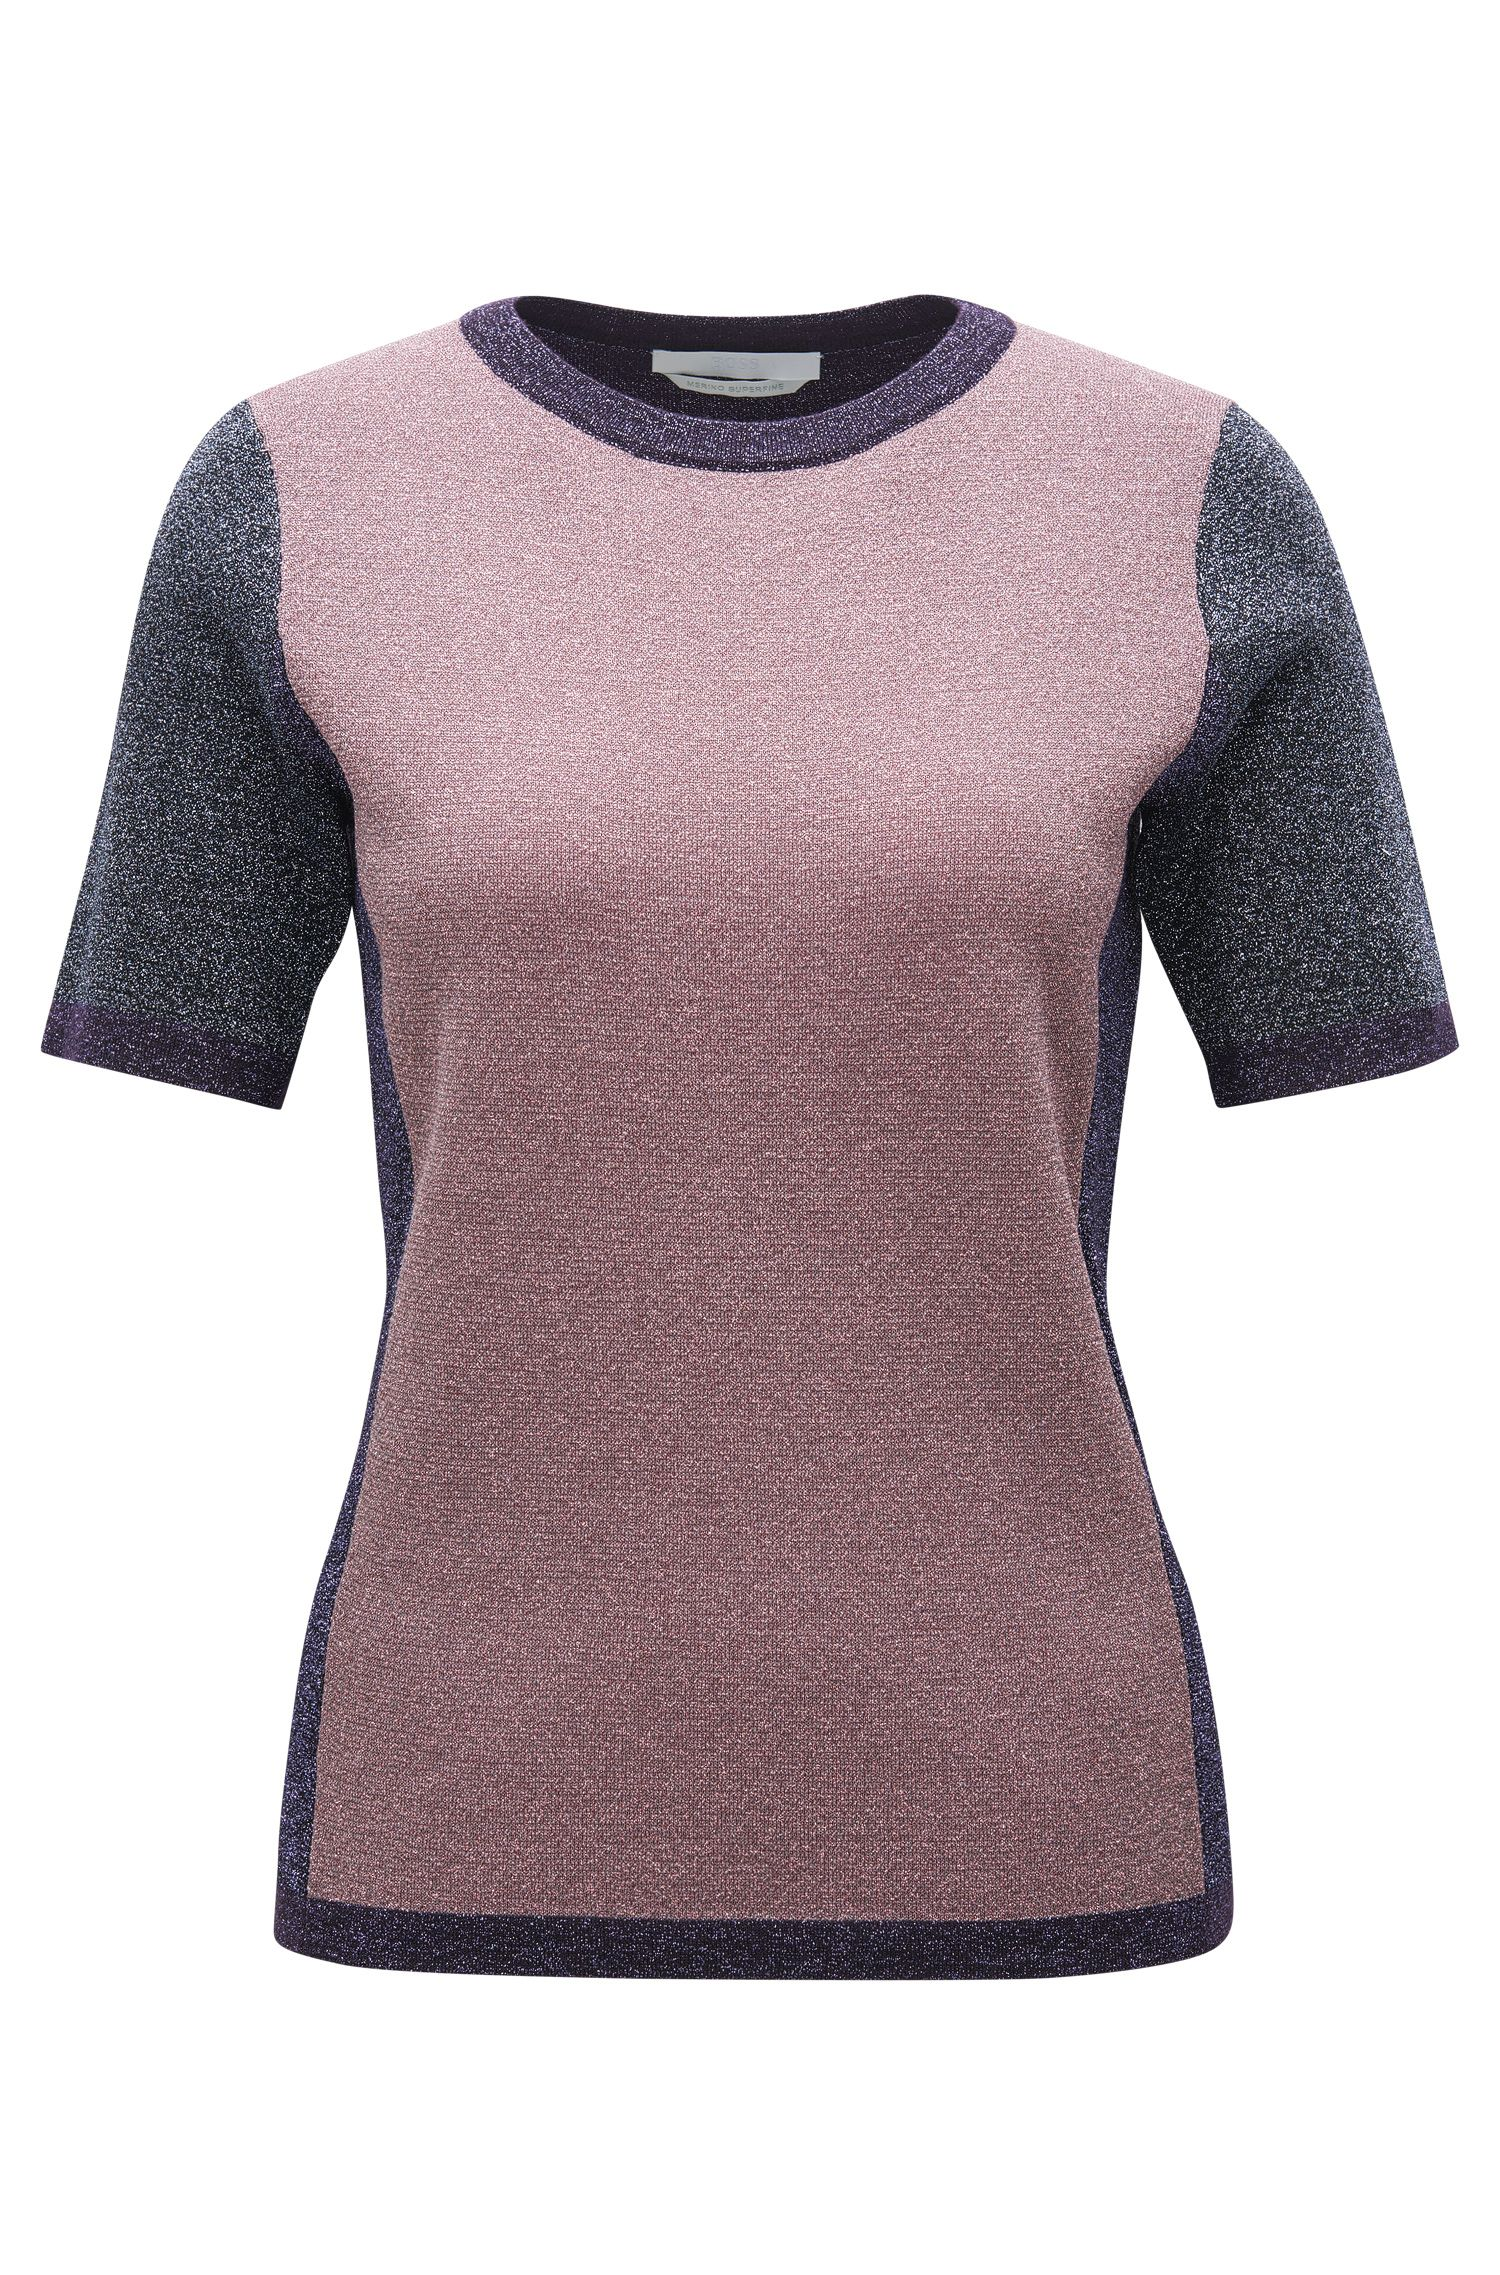 Metallised Virgin Wool Blend Top | Fifer